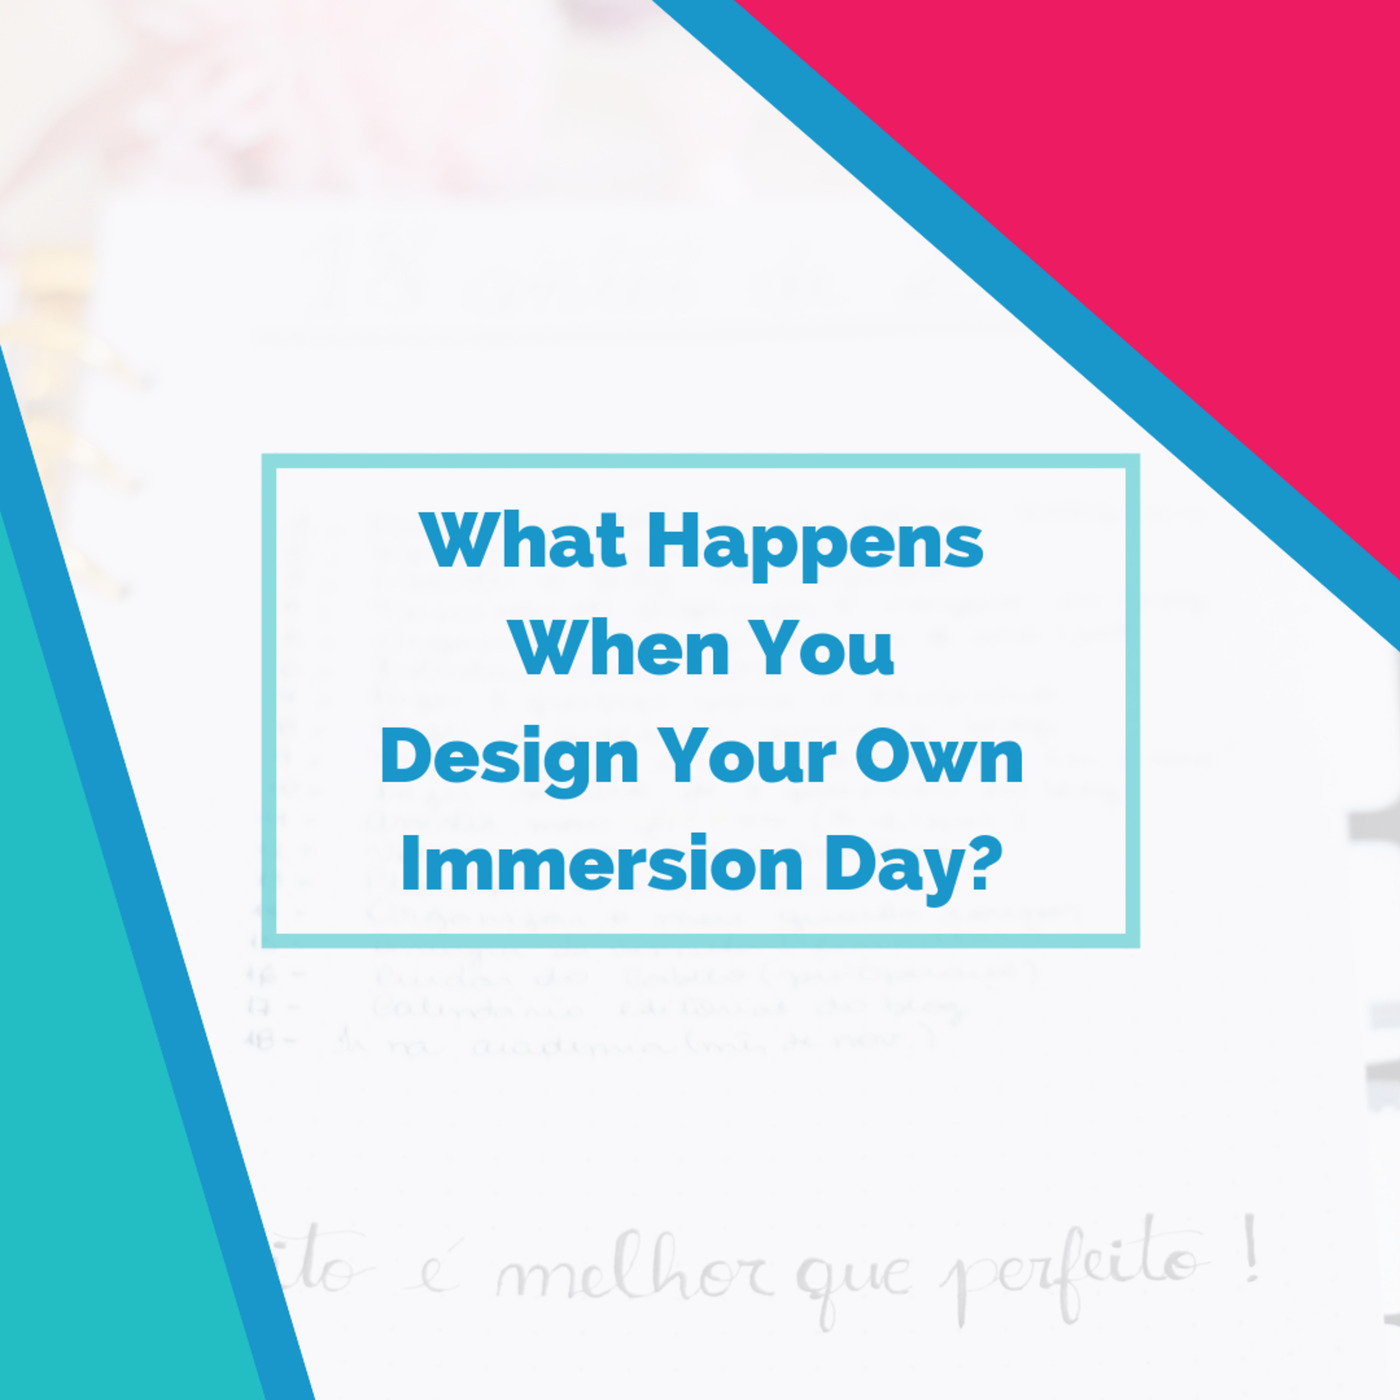 The Fluent Show: What Happens When You Design Your Own Immersion Day?